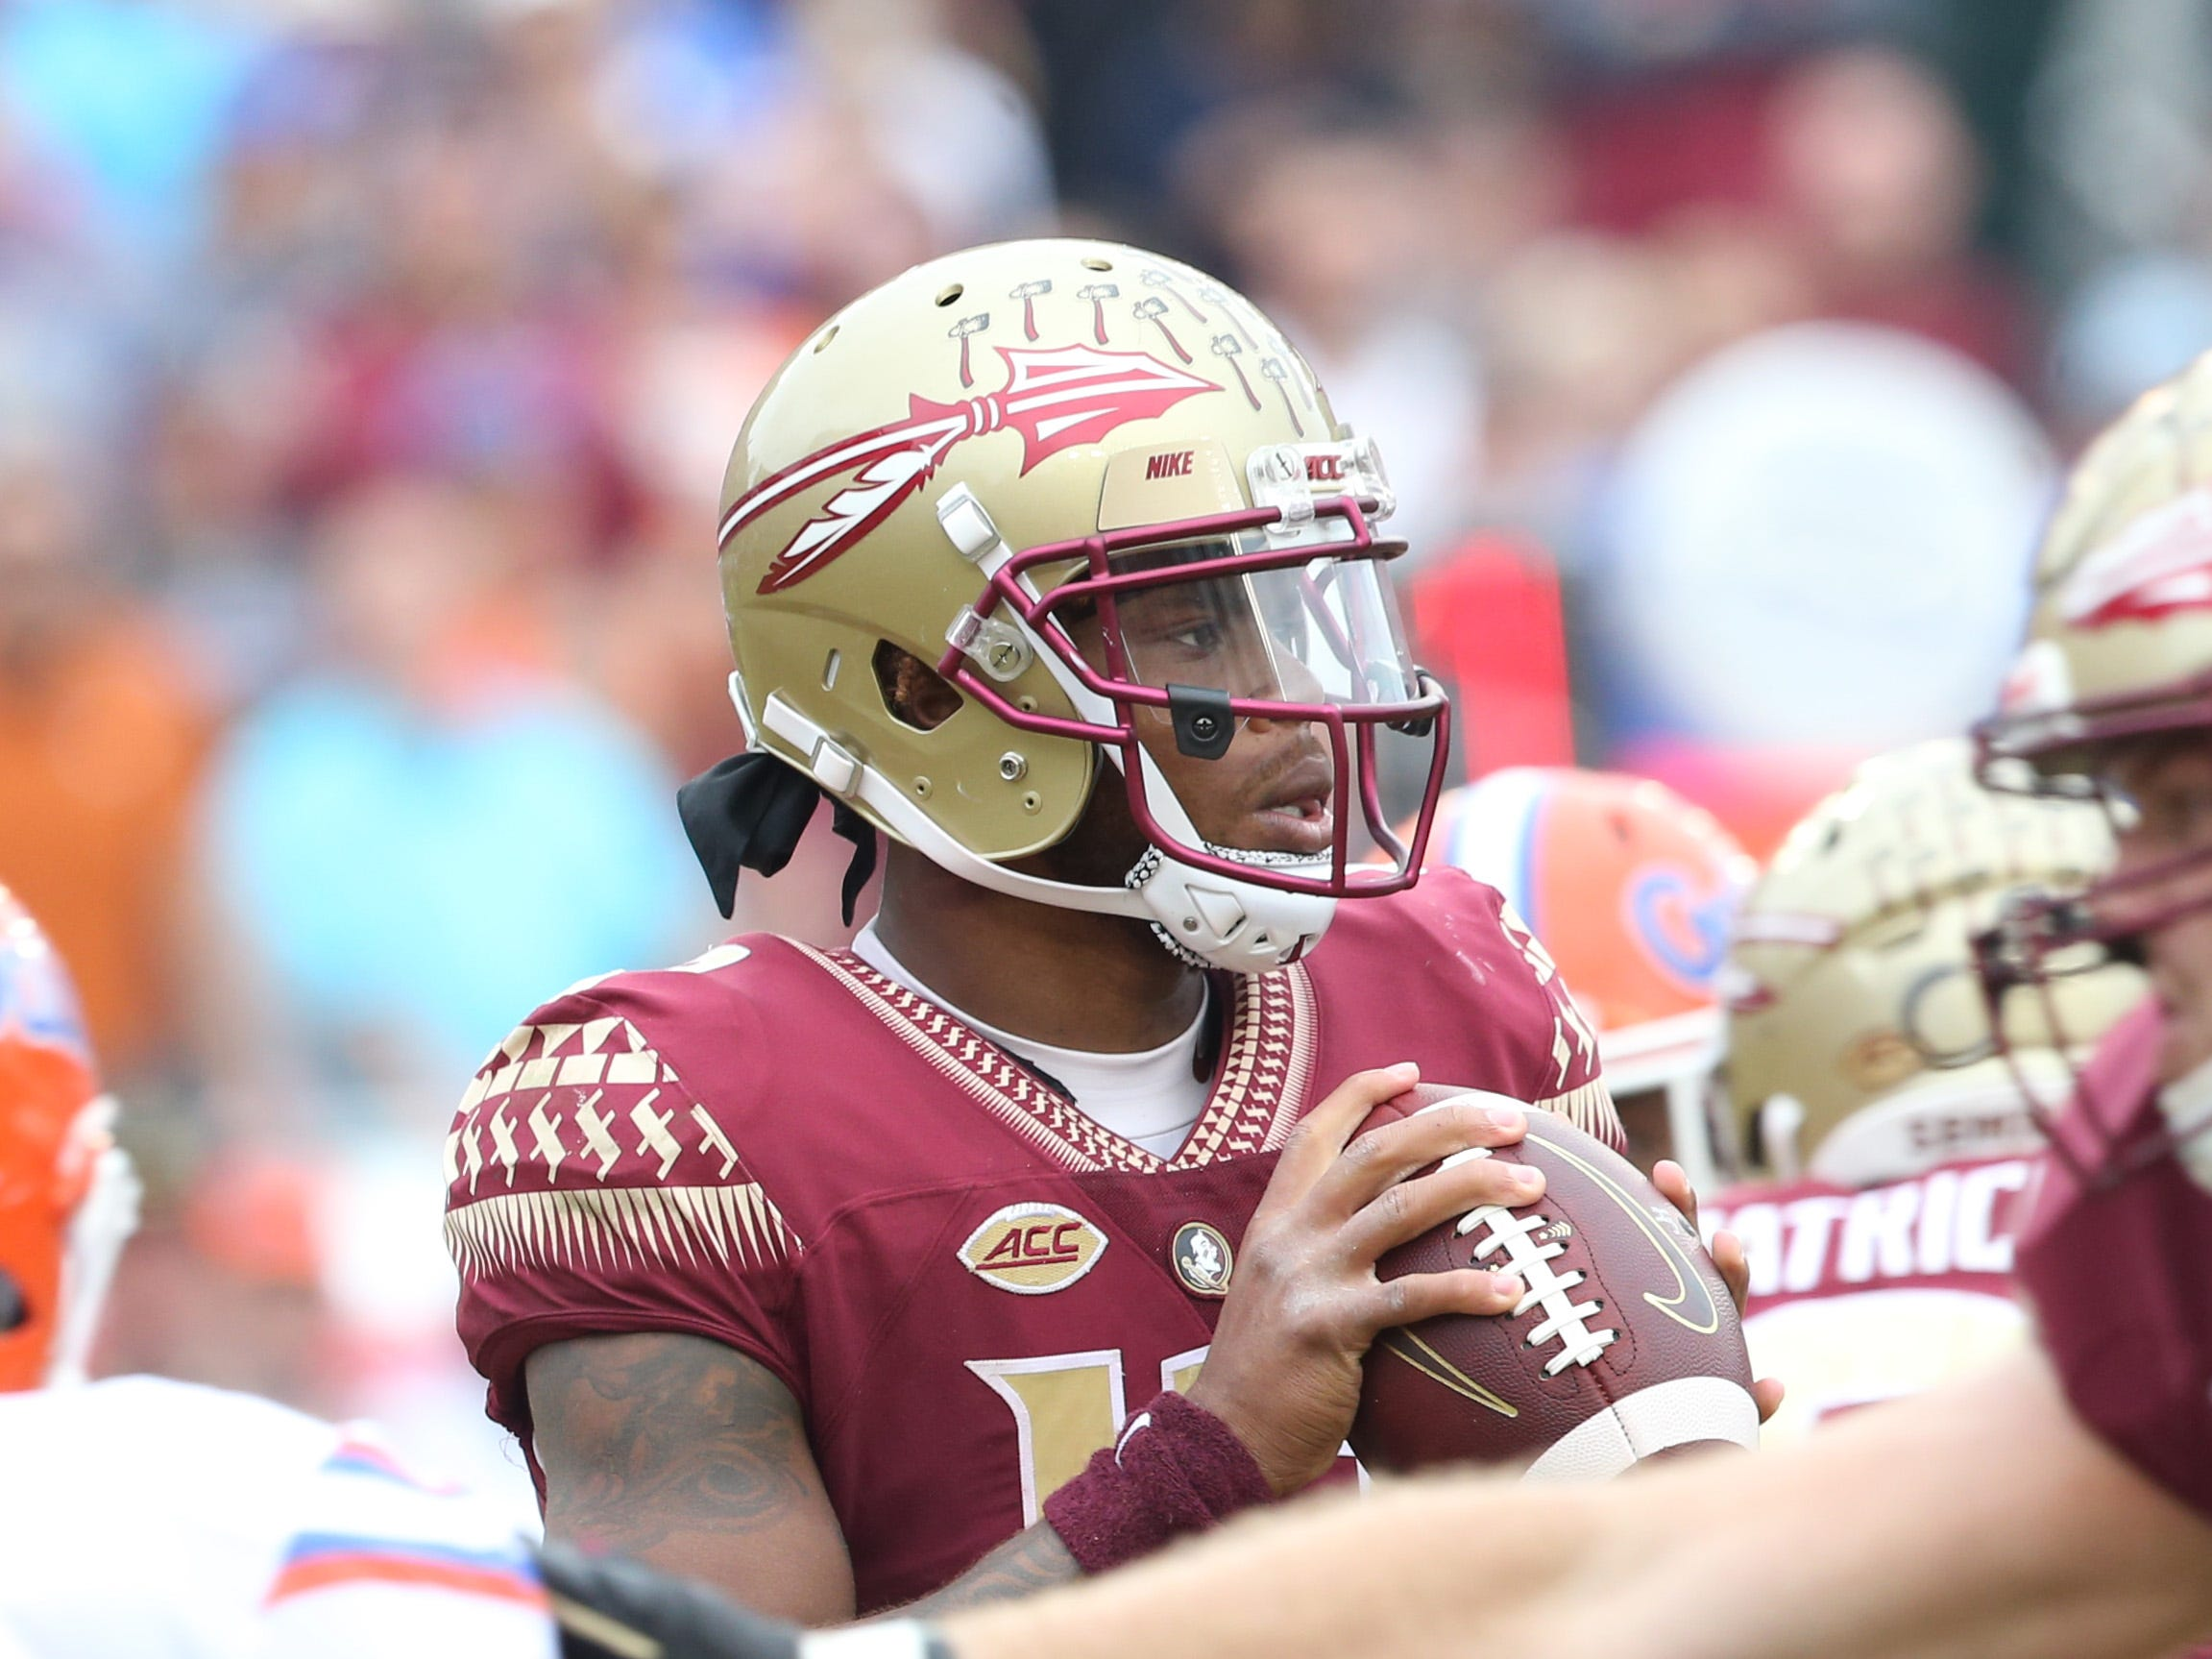 Florida State Seminoles quarterback Deondre Francois (12)looks to pass as the Florida State Seminoles take on their rival the Florida Gators in college football at Doak S. Campbell Stadium, Saturday, Nov. 24, 2018.